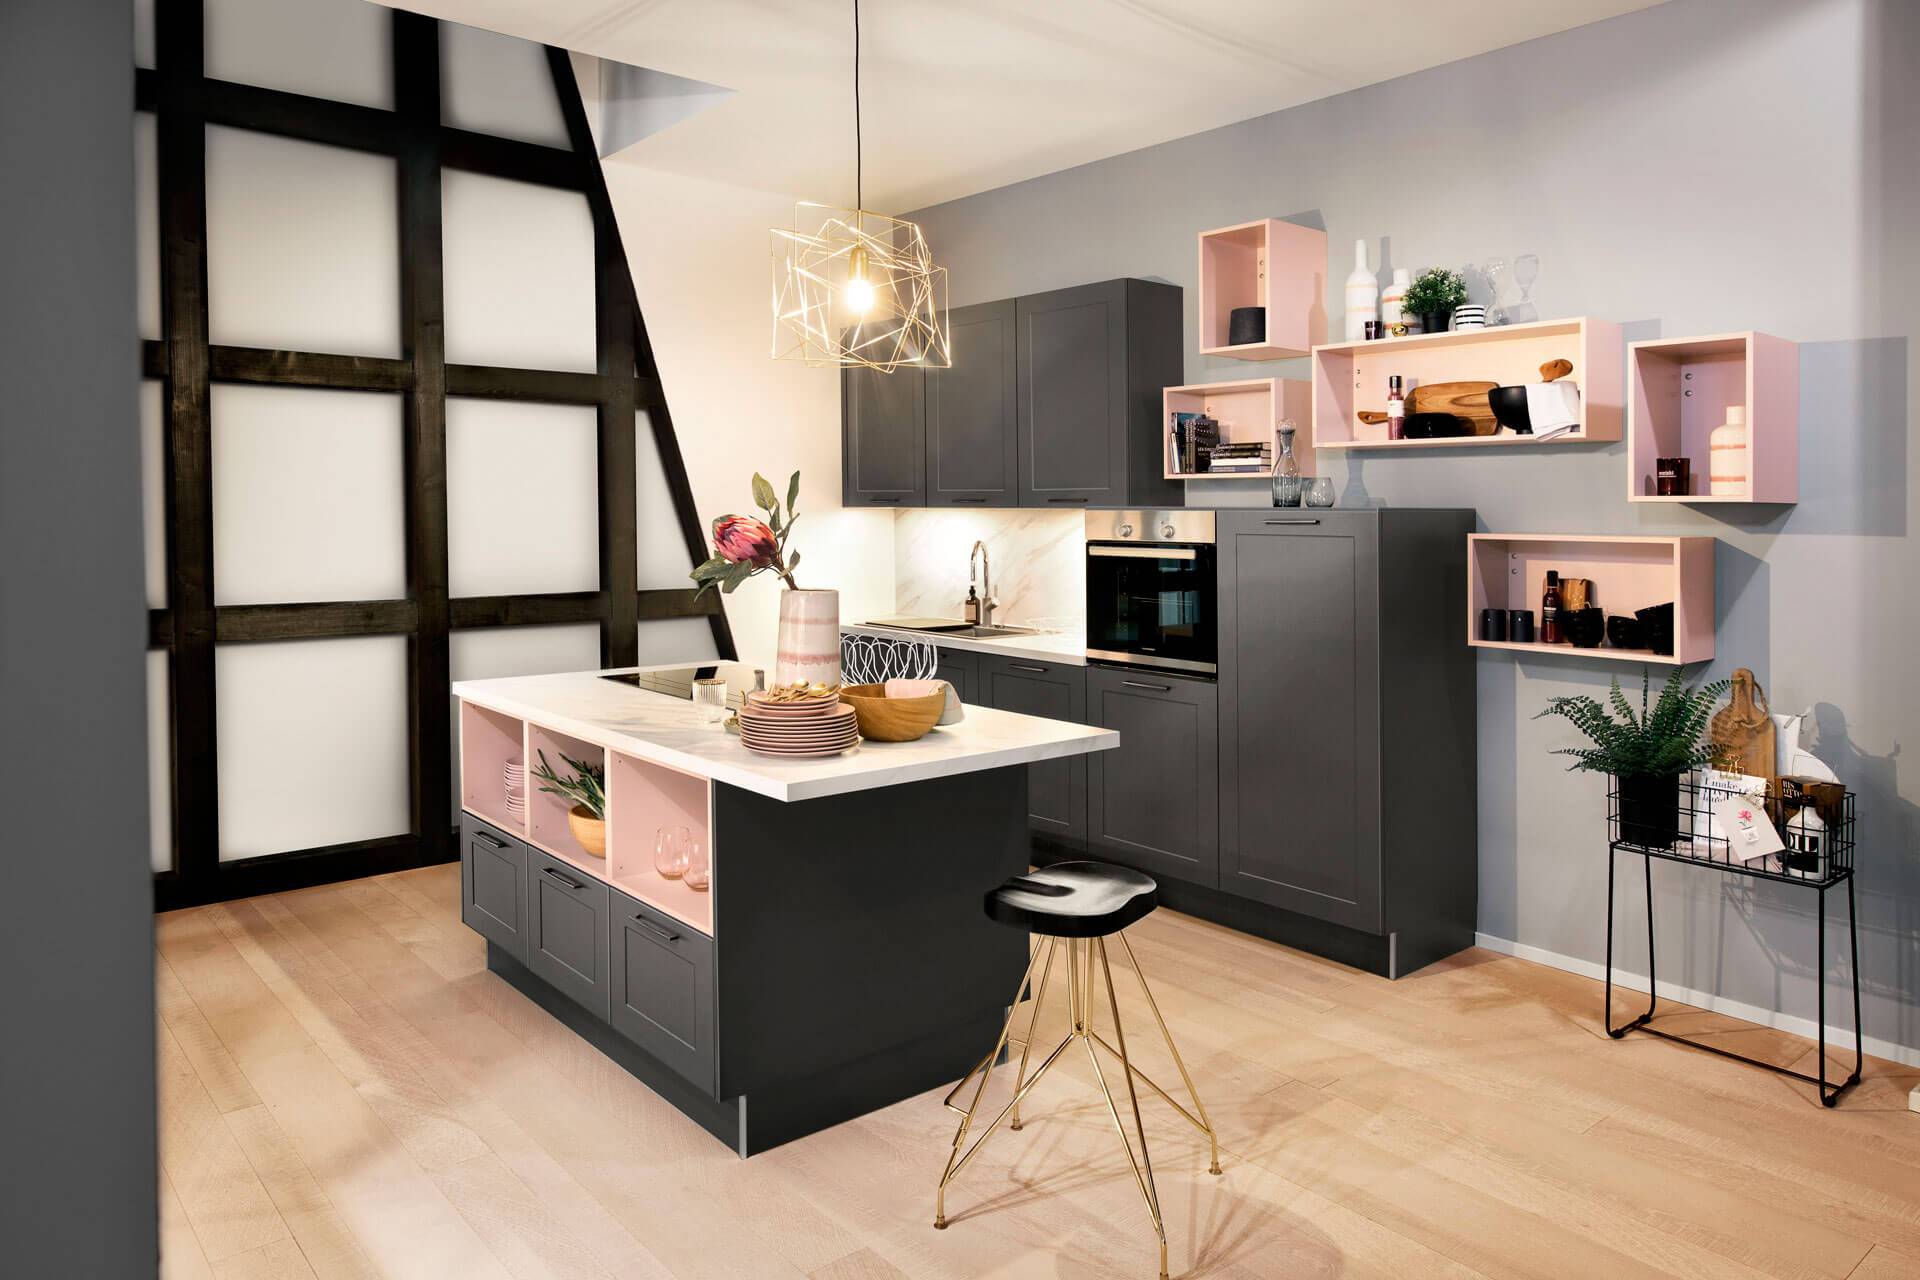 les couleurs tendances 2019 pour les cuisines ai cuisines thonon. Black Bedroom Furniture Sets. Home Design Ideas